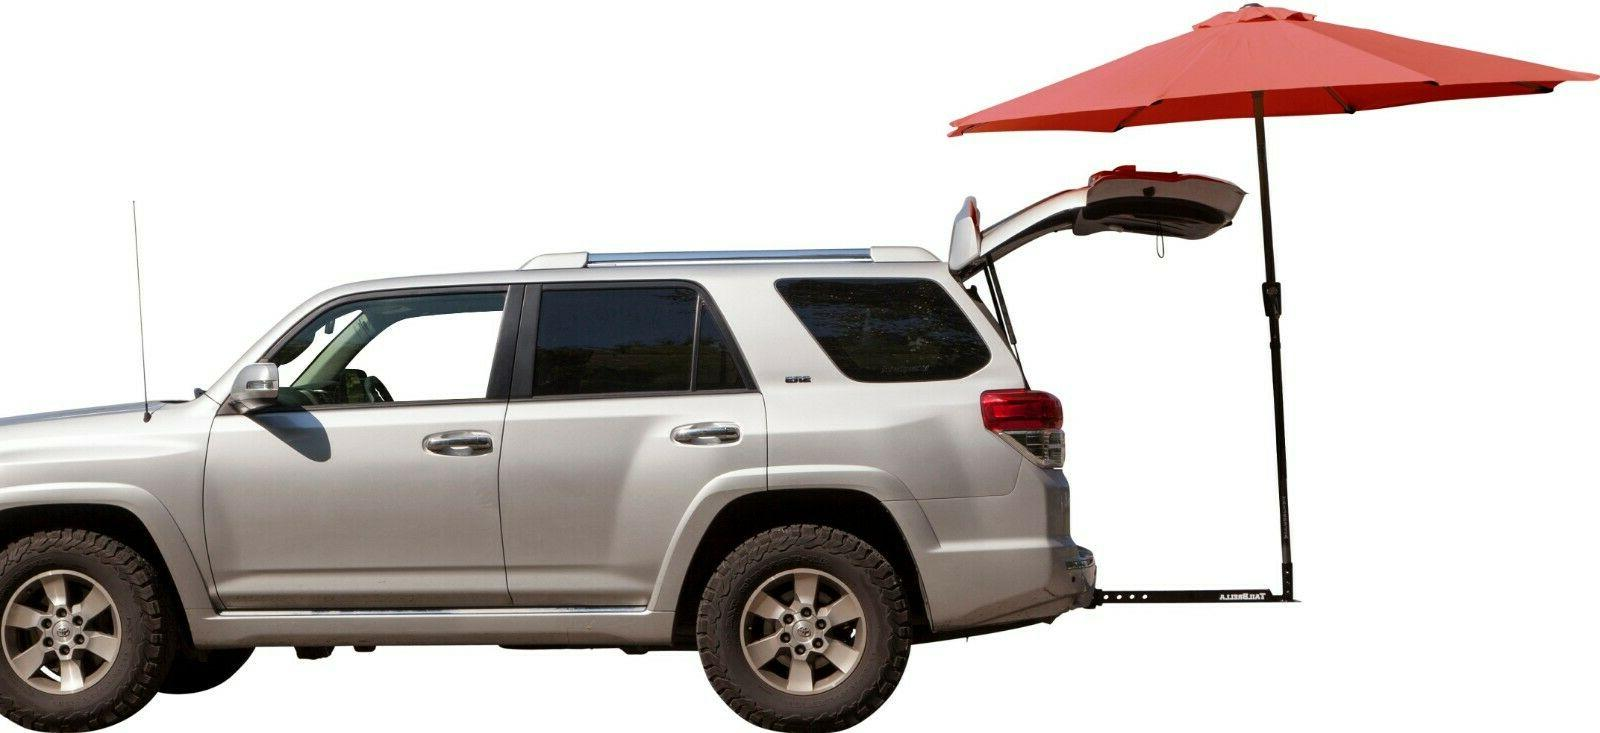 TailBrella The Hitch Umbrella -Tailgating Beach Football Kid